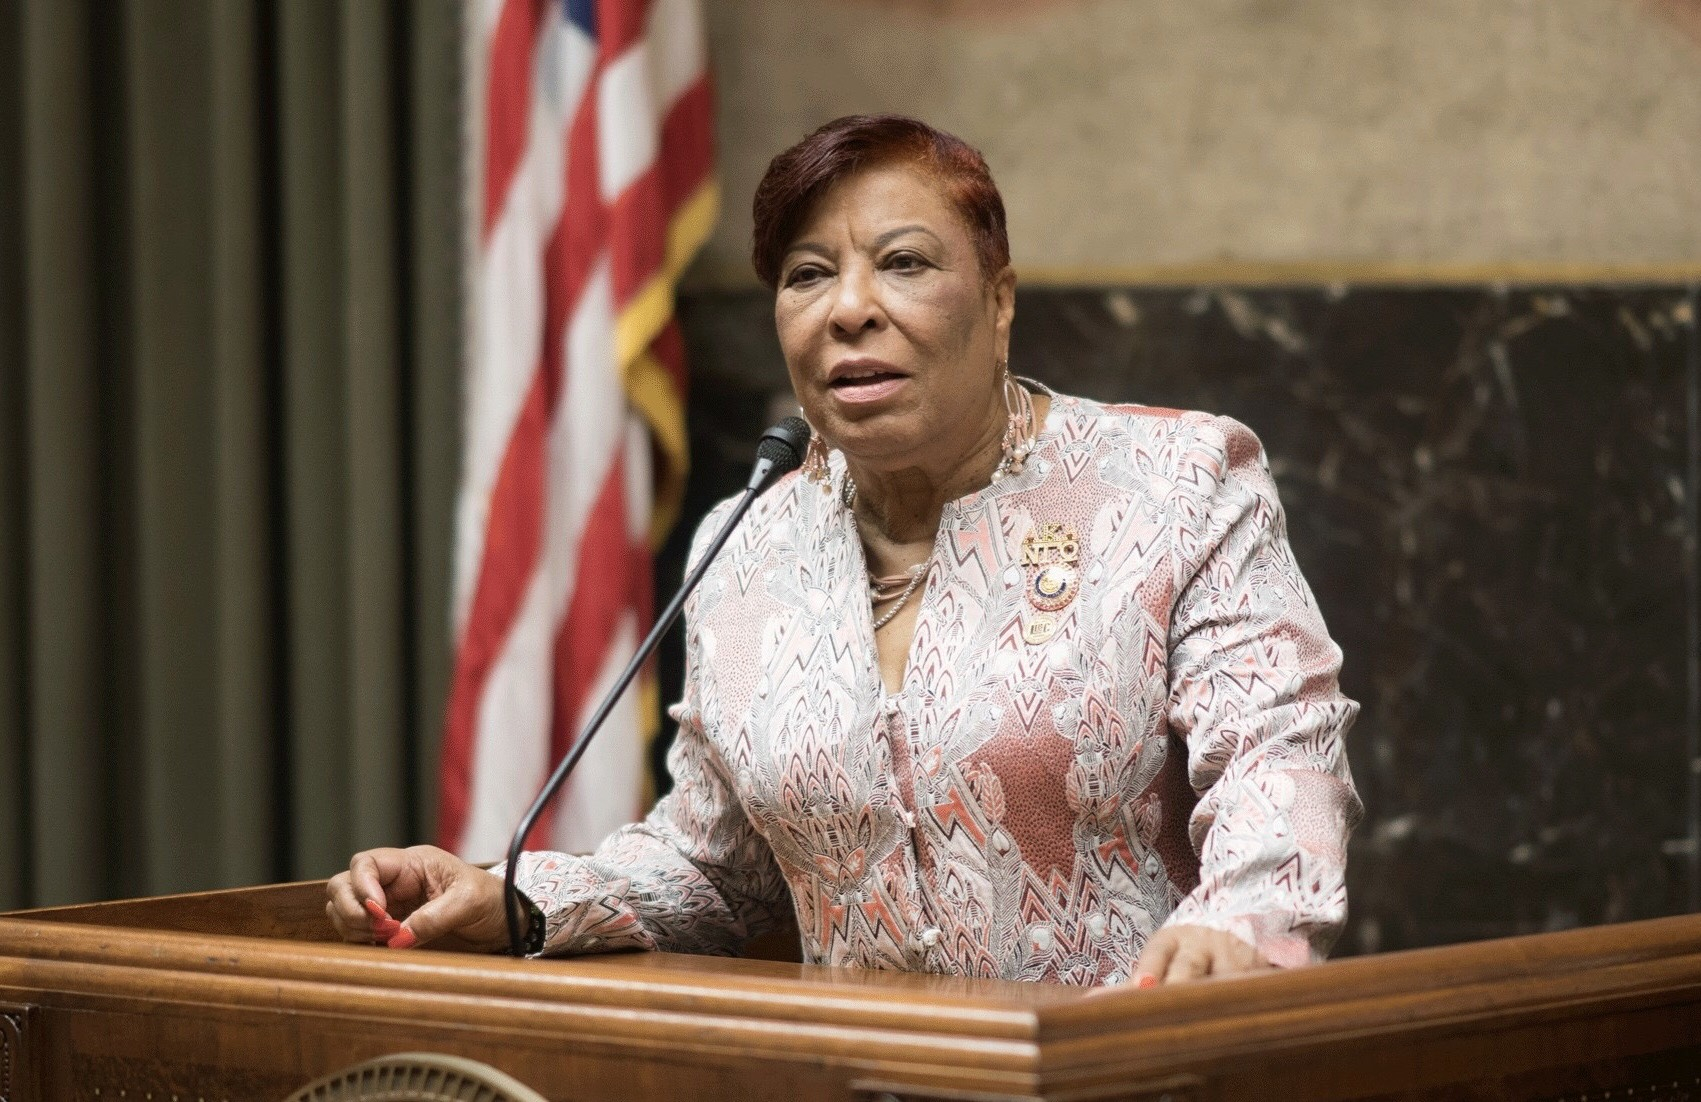 The Honorable State Rep. Patricia Haynes Smith